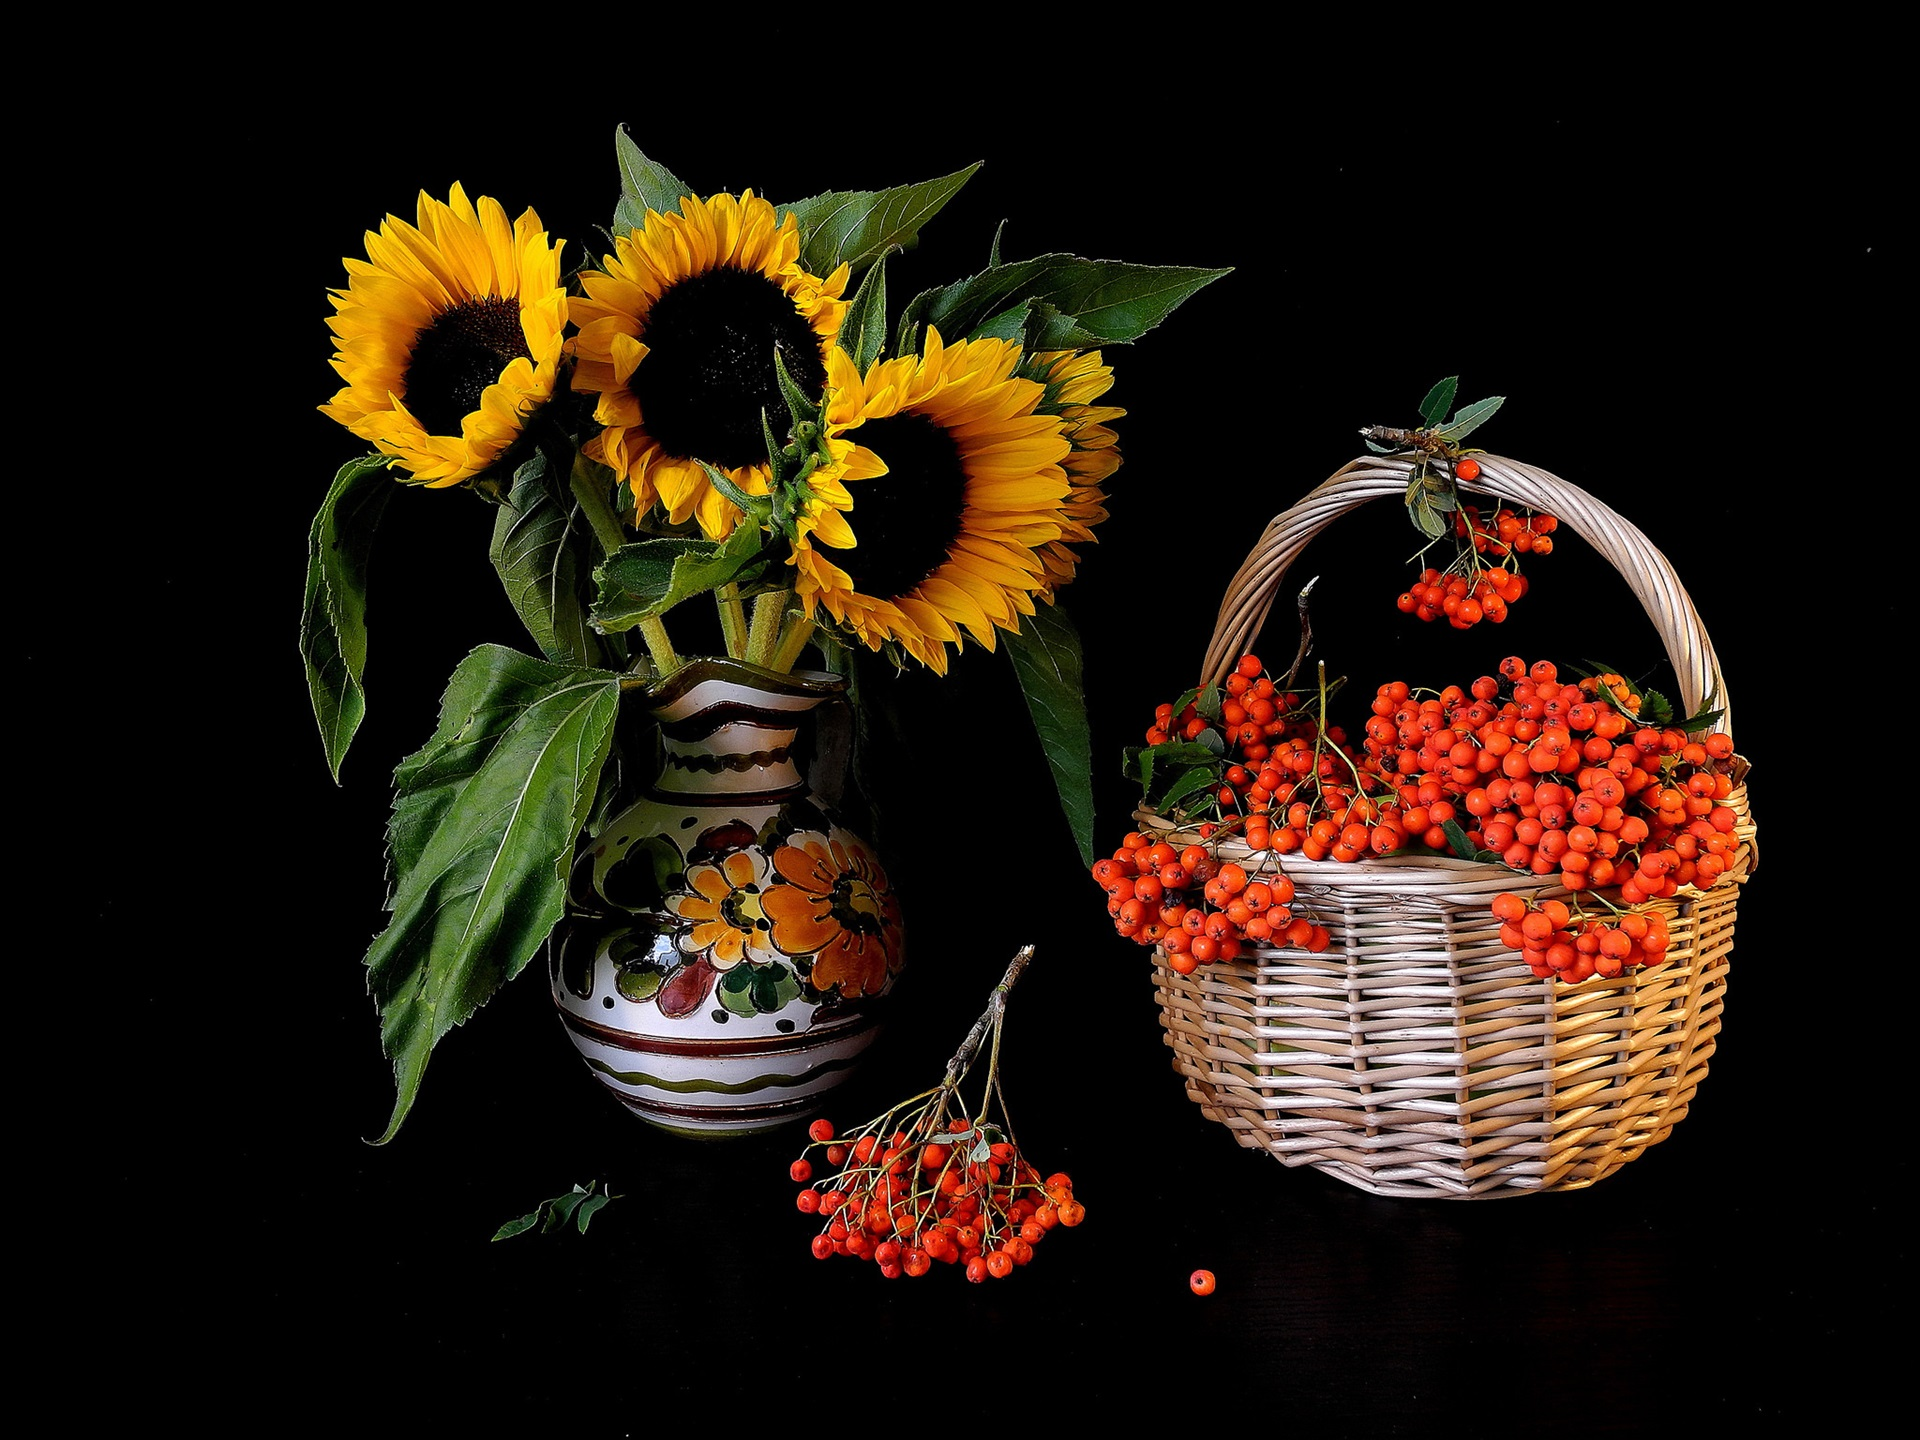 Wallpaper Sunflowers, red berries 1920x1440 HD Picture, Image